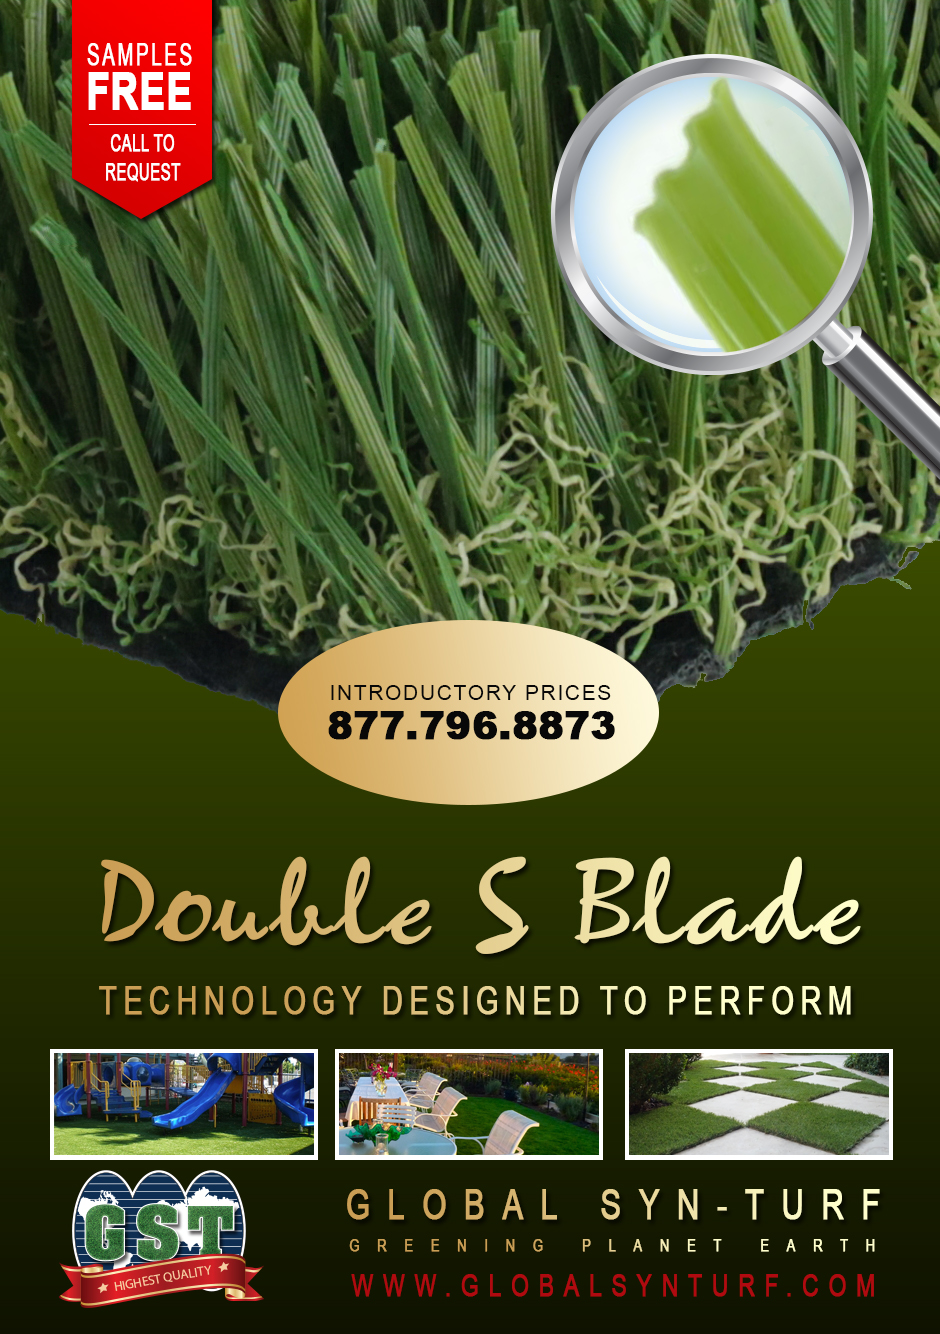 fake-grass Global Syn-Turf Launches Premium Double S Blade Artificial Grass Technology